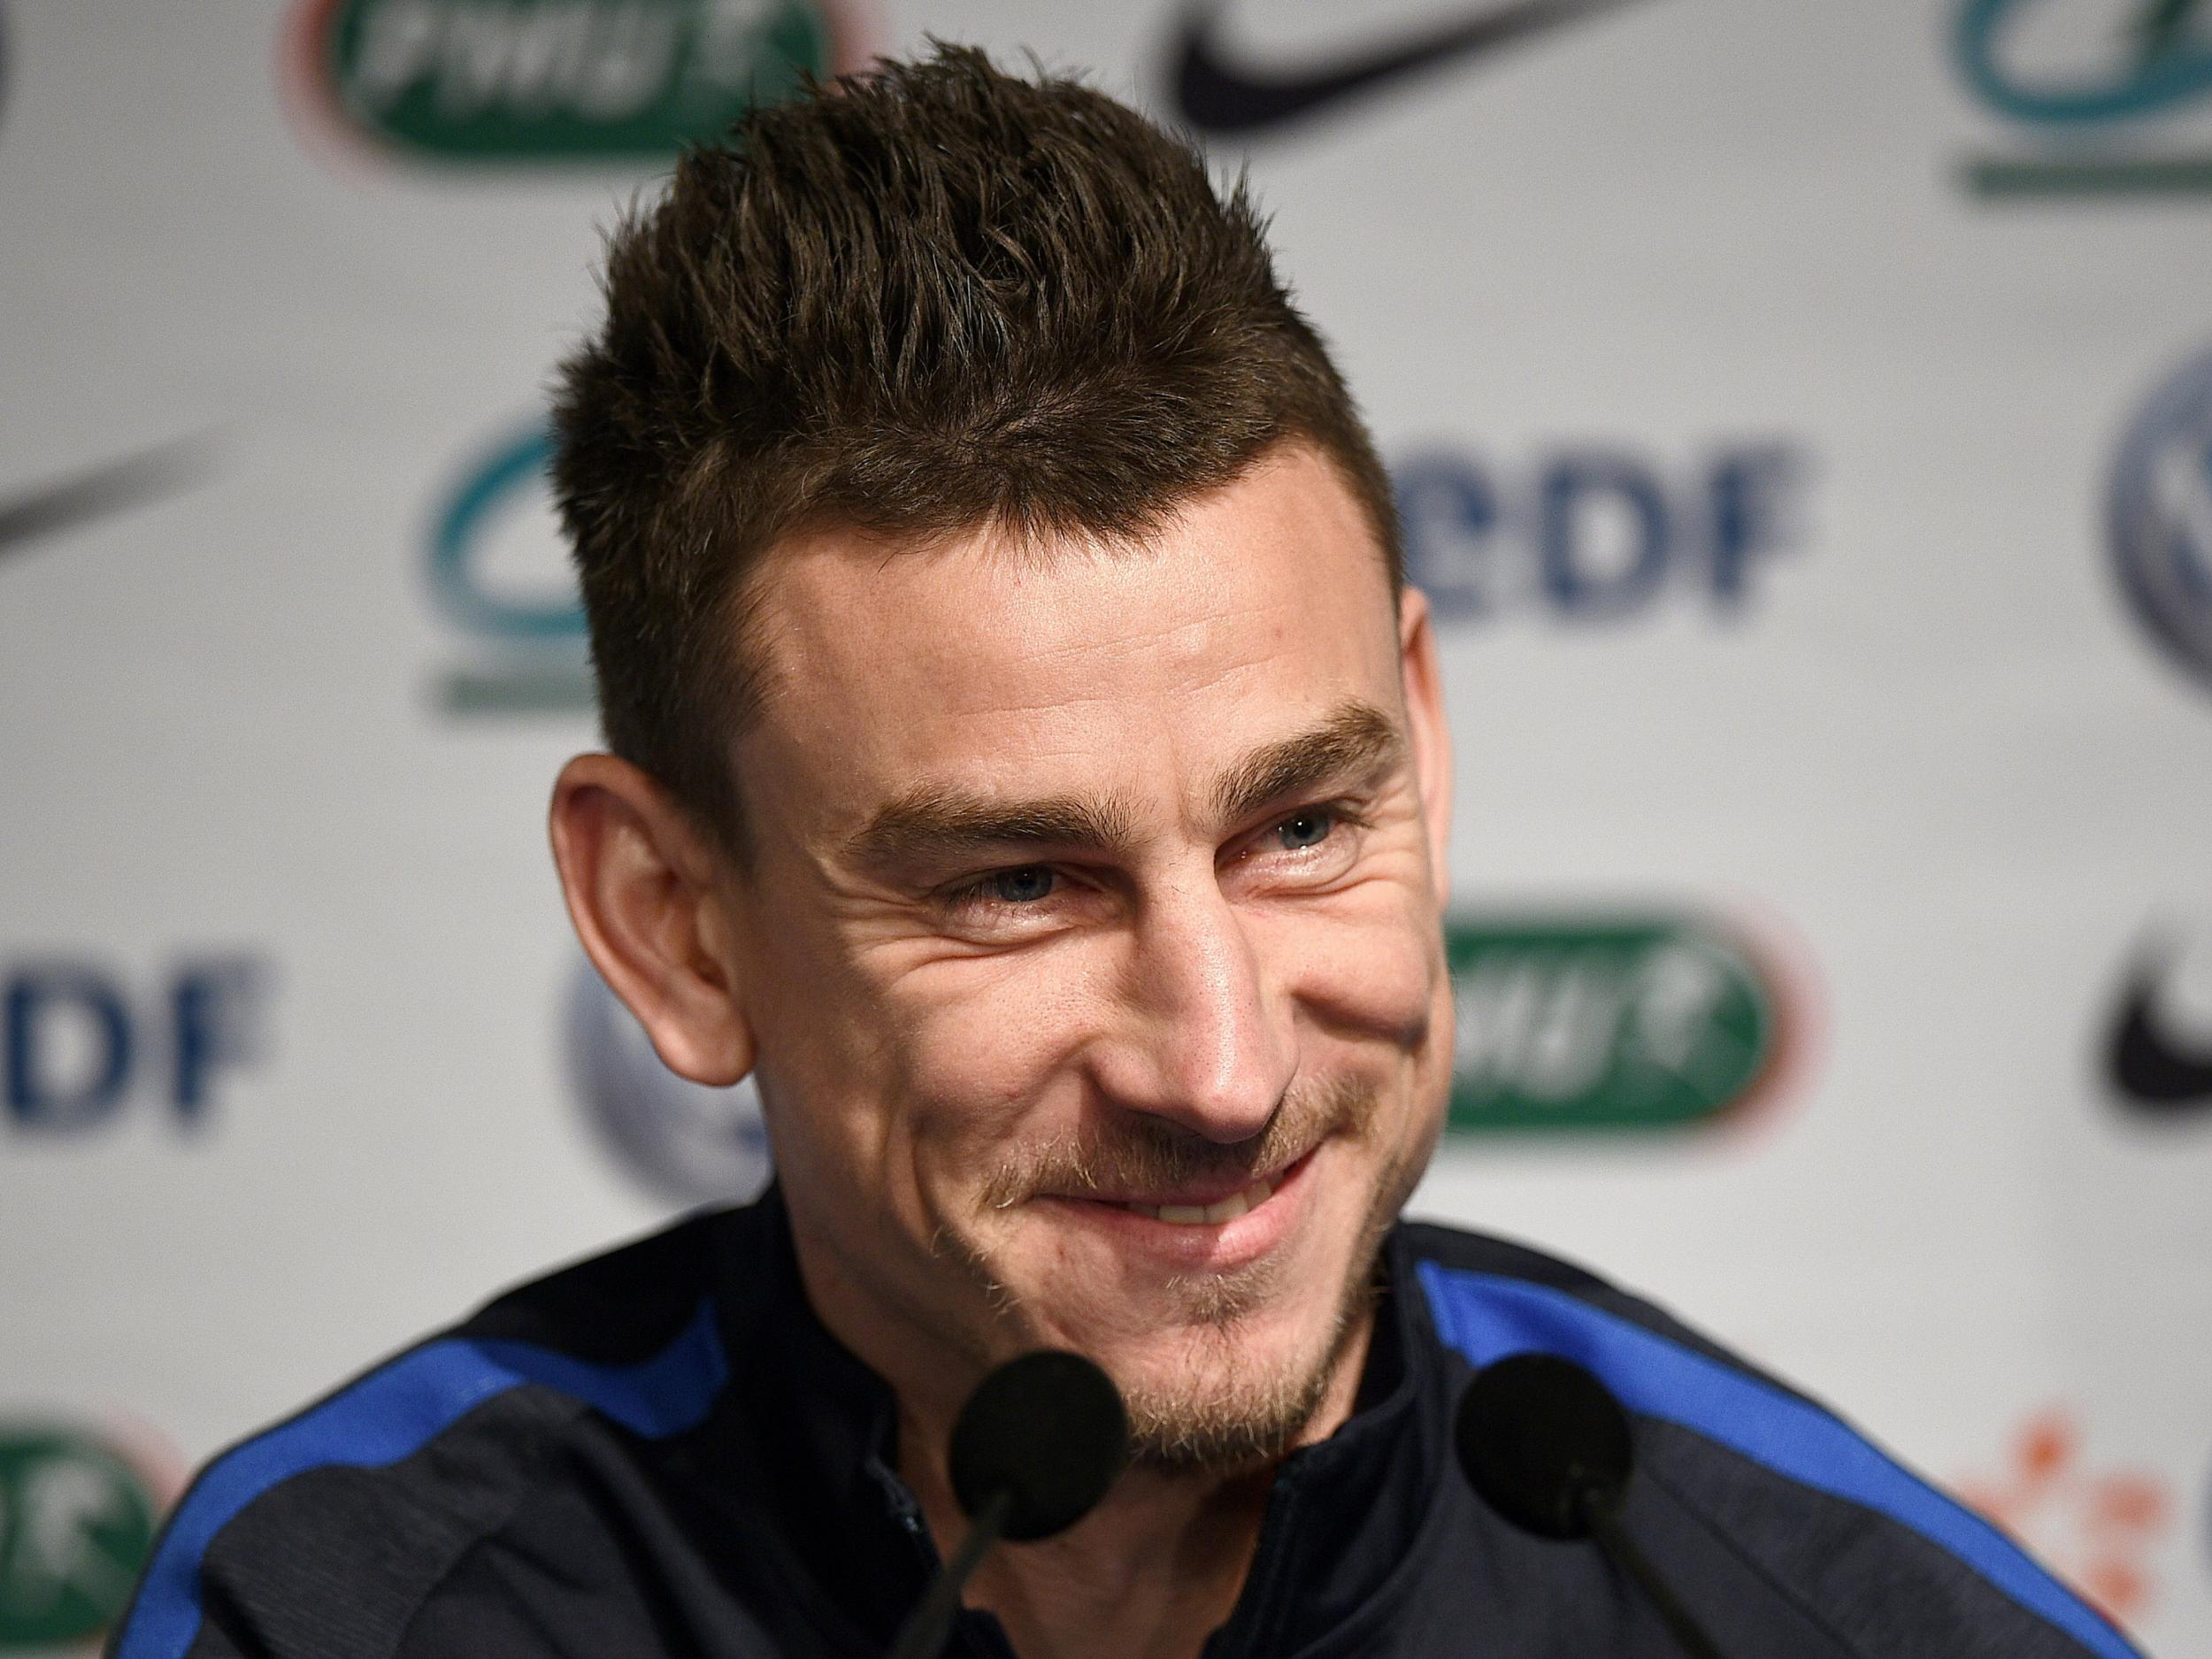 Late bloomer Laurent Koscielny is blossoming at the right time for Les Bleu